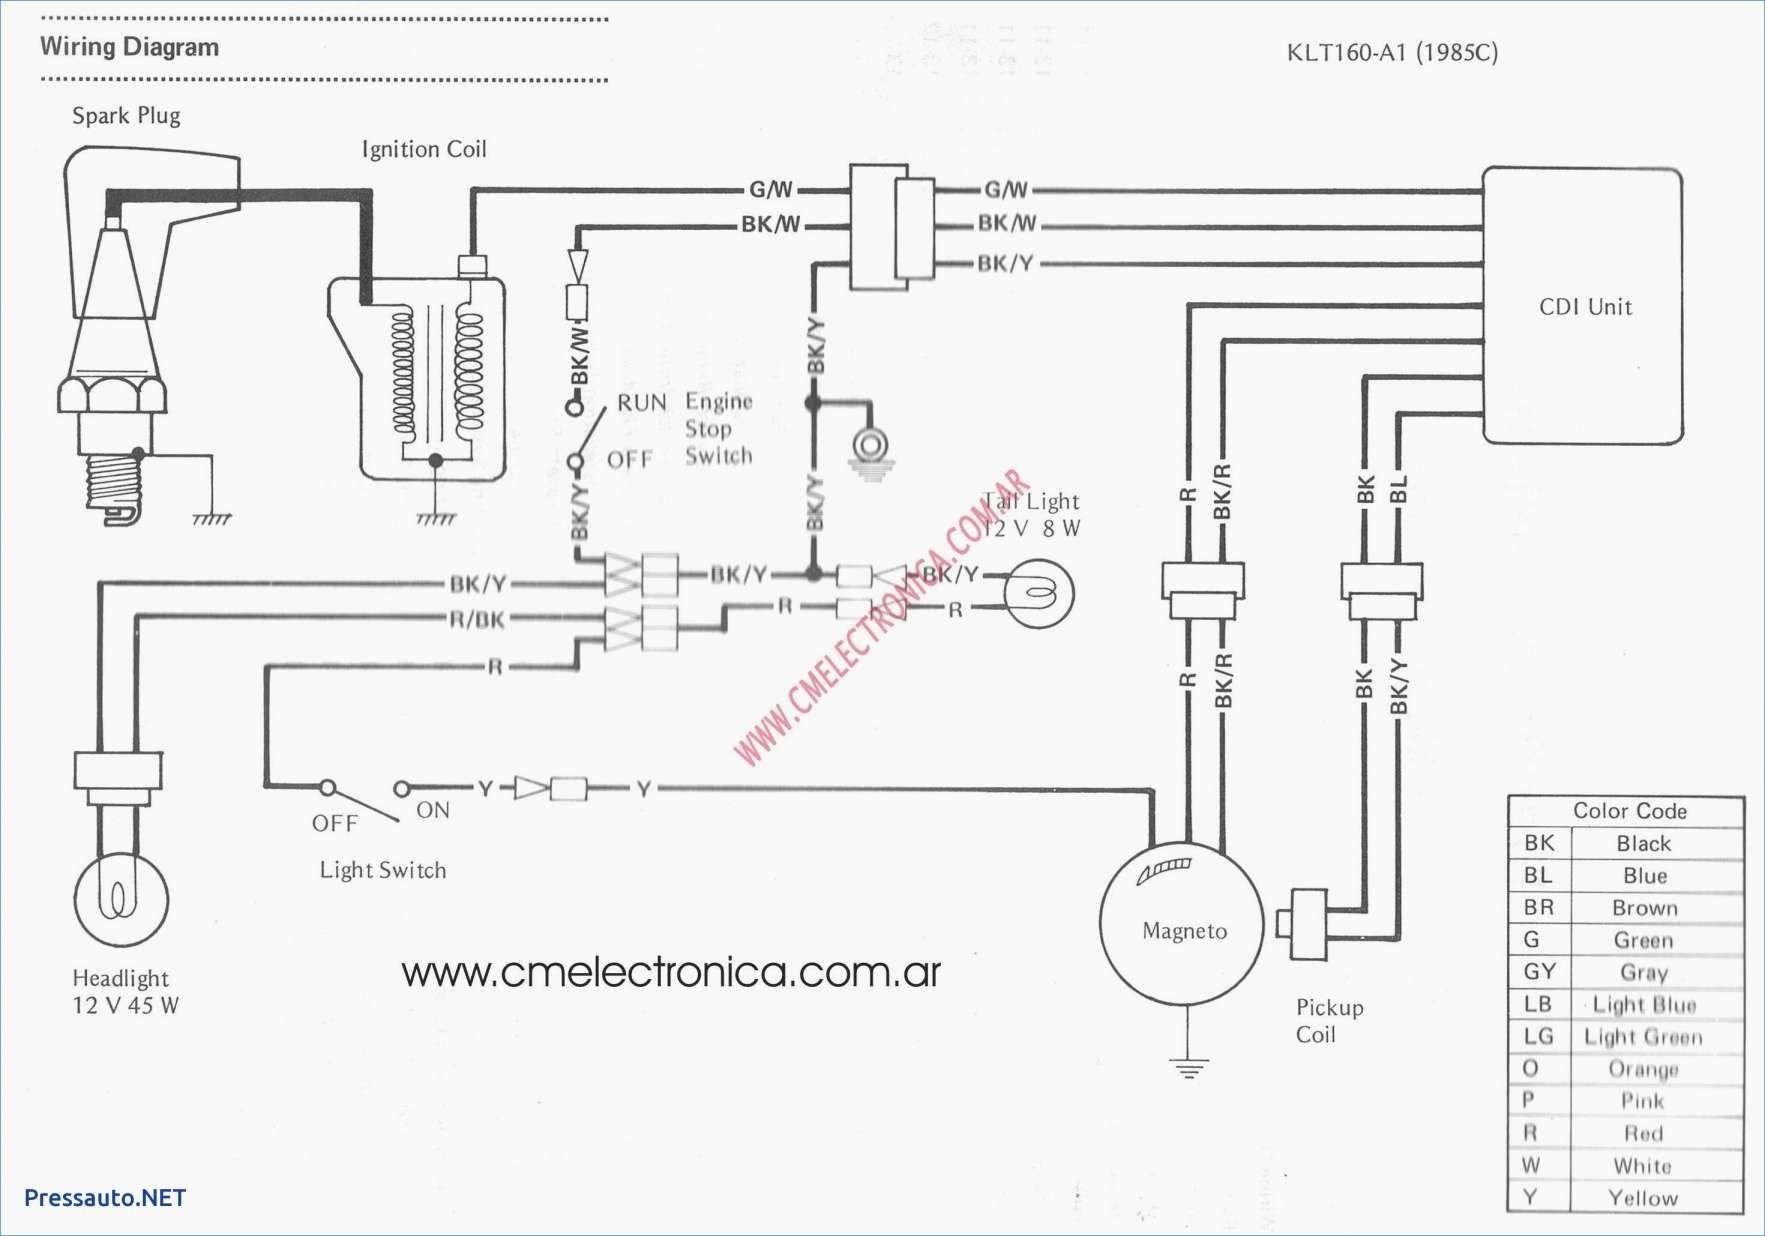 Mf 135 Diesel Wiring Diagram Massey Ferguson Schematics Wiring Diagram Schematic Of Mf 135 Diesel Wiring Diagram